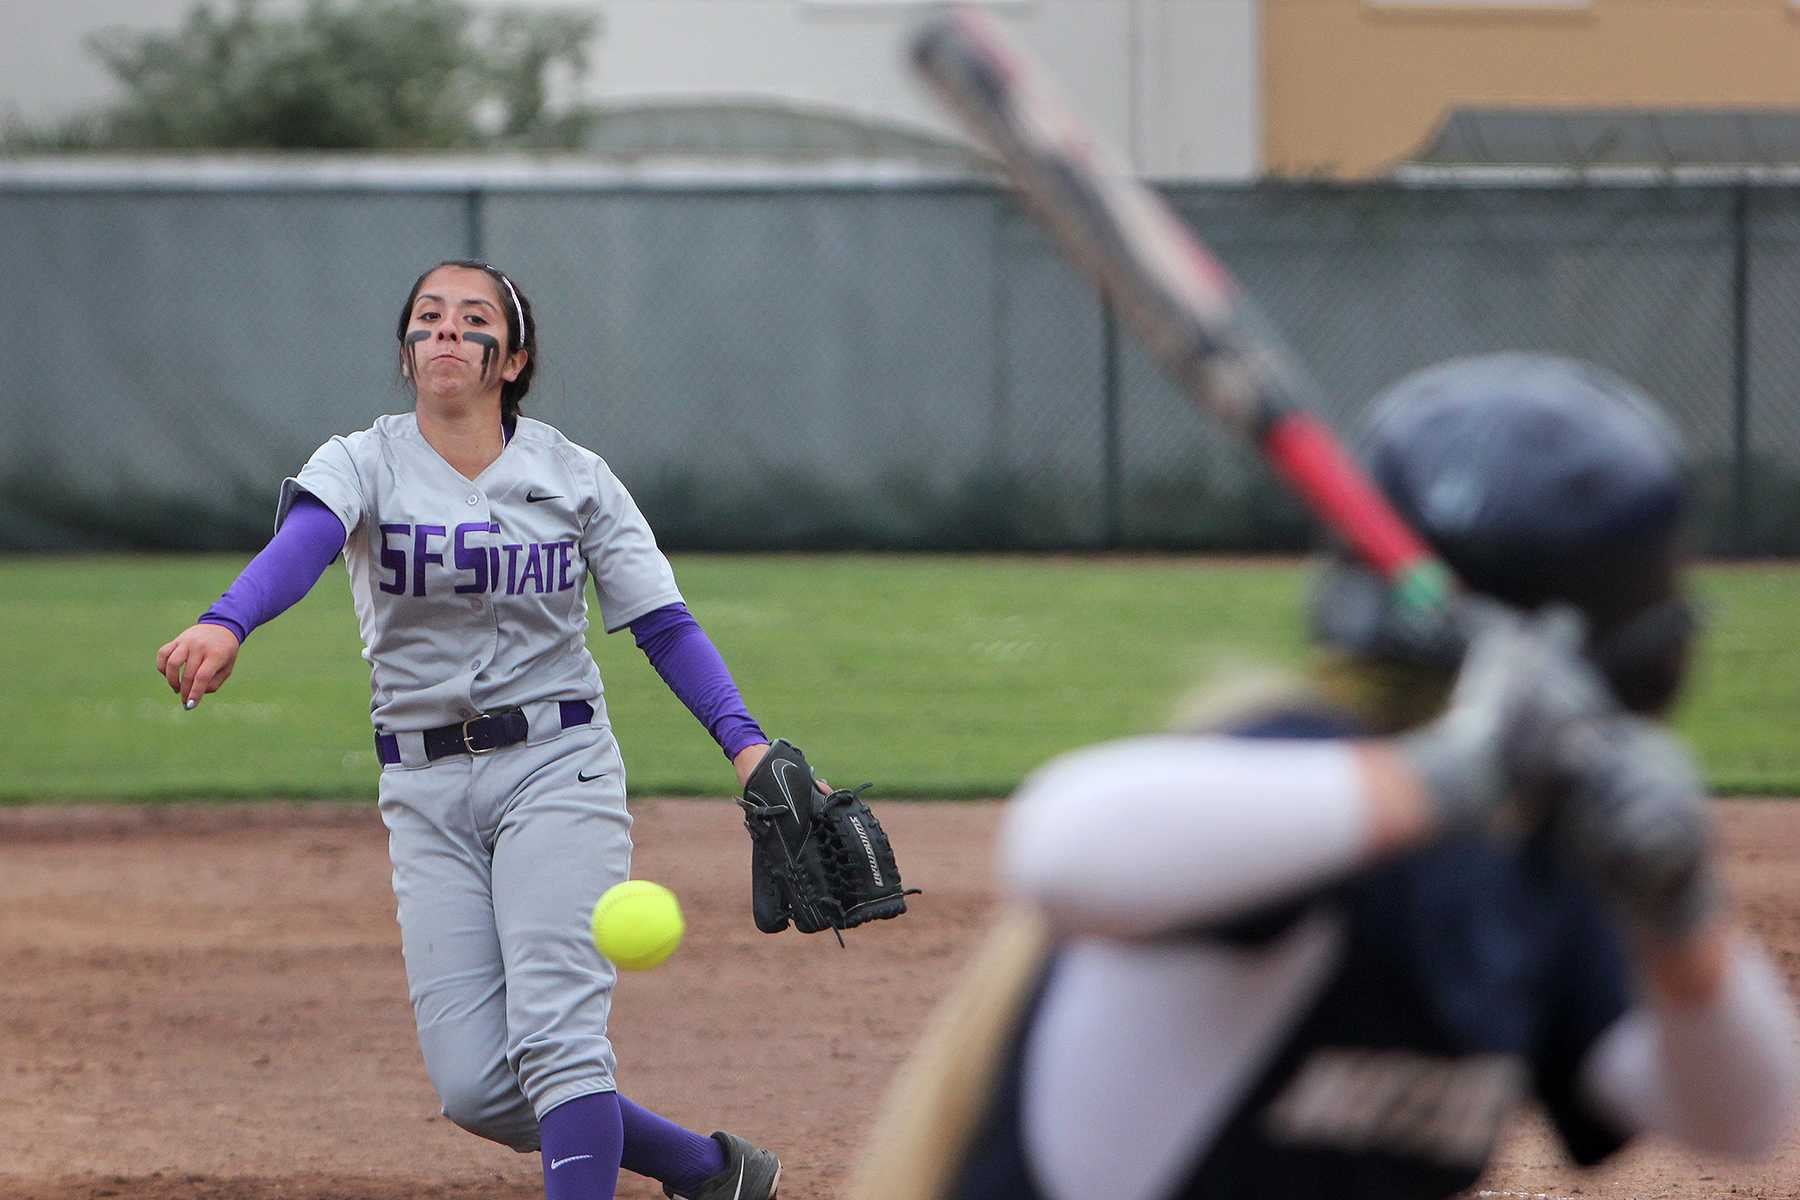 SF State's Kylie Garbowski (6) on home plate putouts Amanda Wallach (3) of the Norte Dame de Namur Argonauts at the SF State Gator's home game against Notre Dame de Namur at the softball Field Wednesday, April 9. Photo by Jenny Sokolova /Xpress